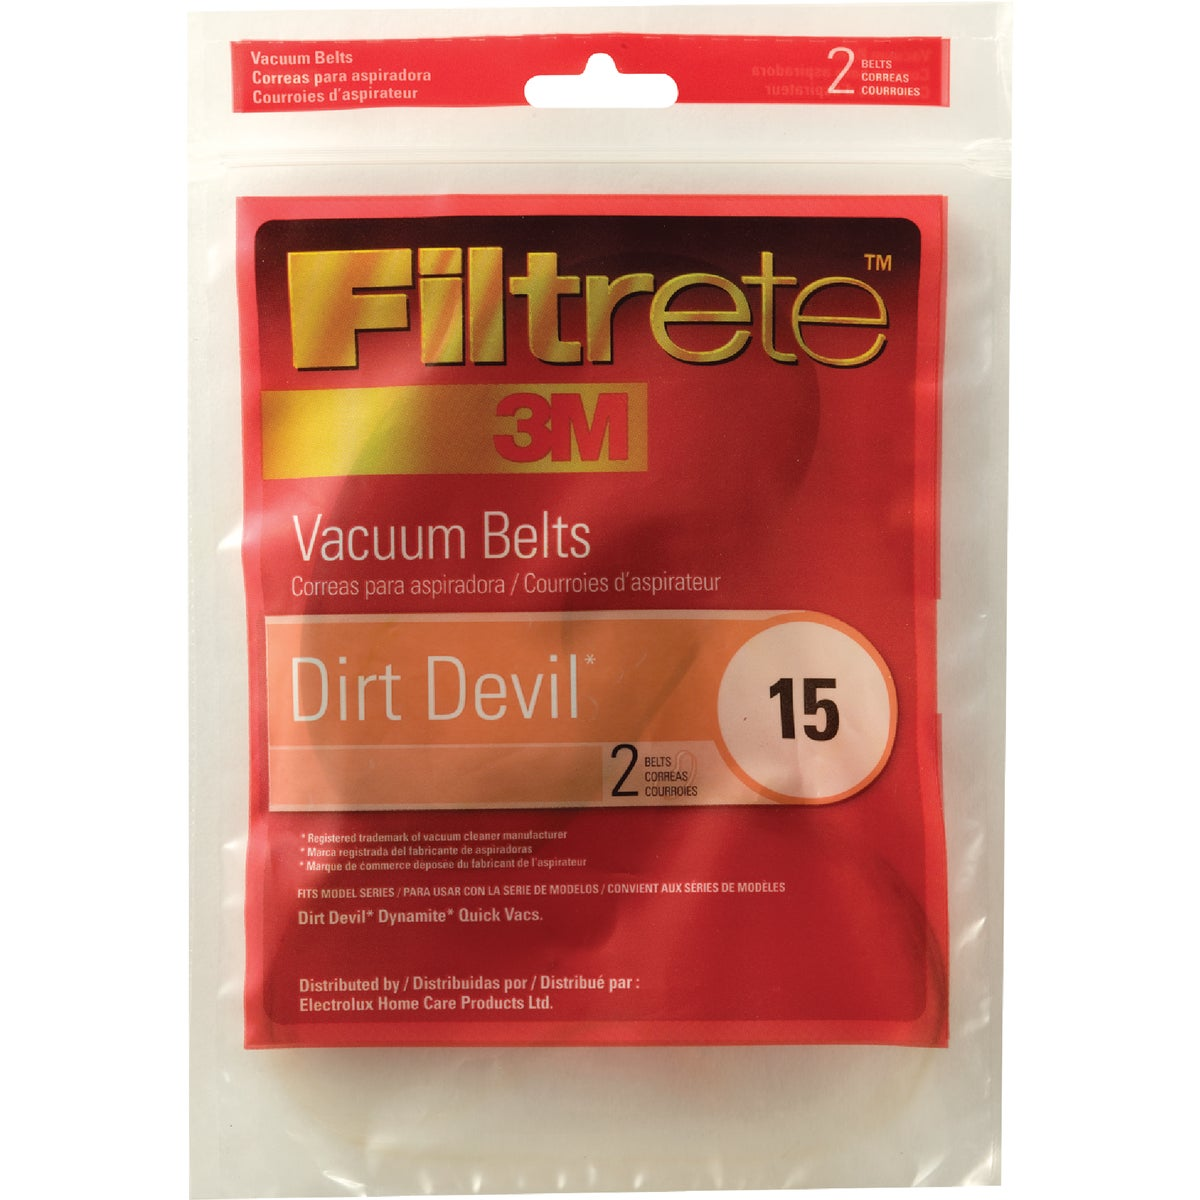 DIRT DEVIL 15 VAC BELT - 65015A-12 by Electrolux Home Care